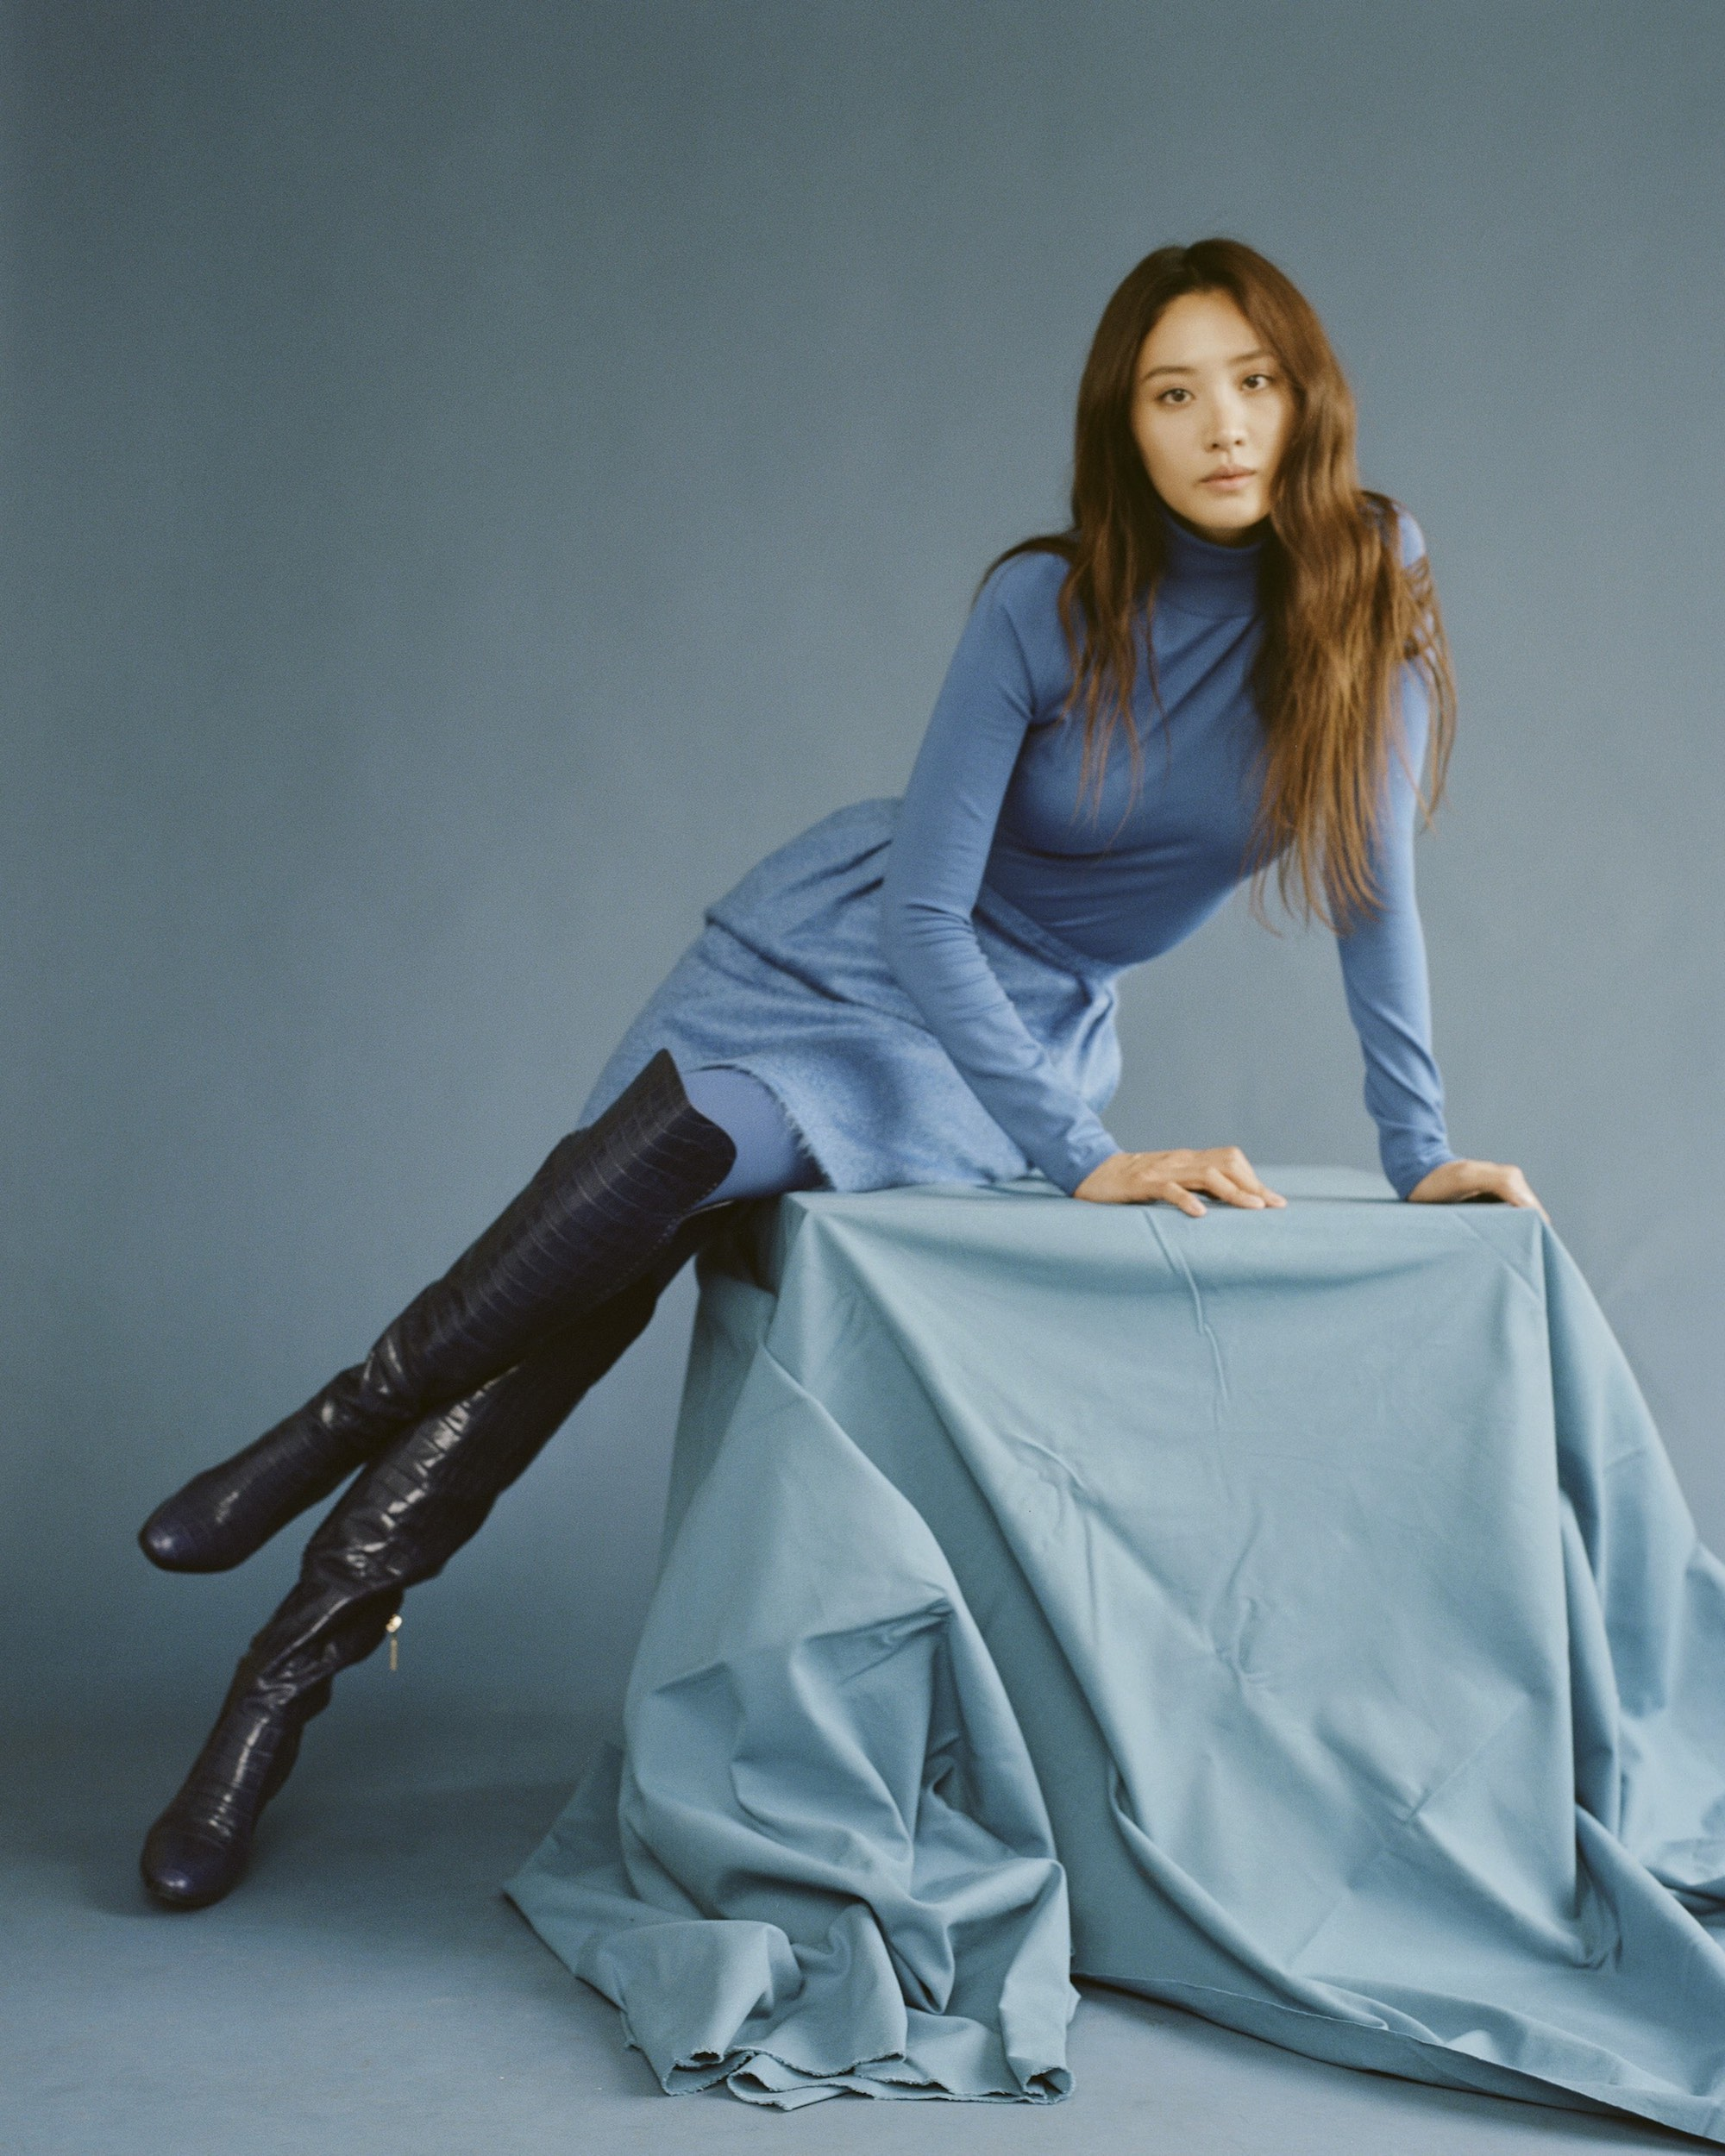 Claudia Kim for Wonderland Autumn 19 issue blue dress